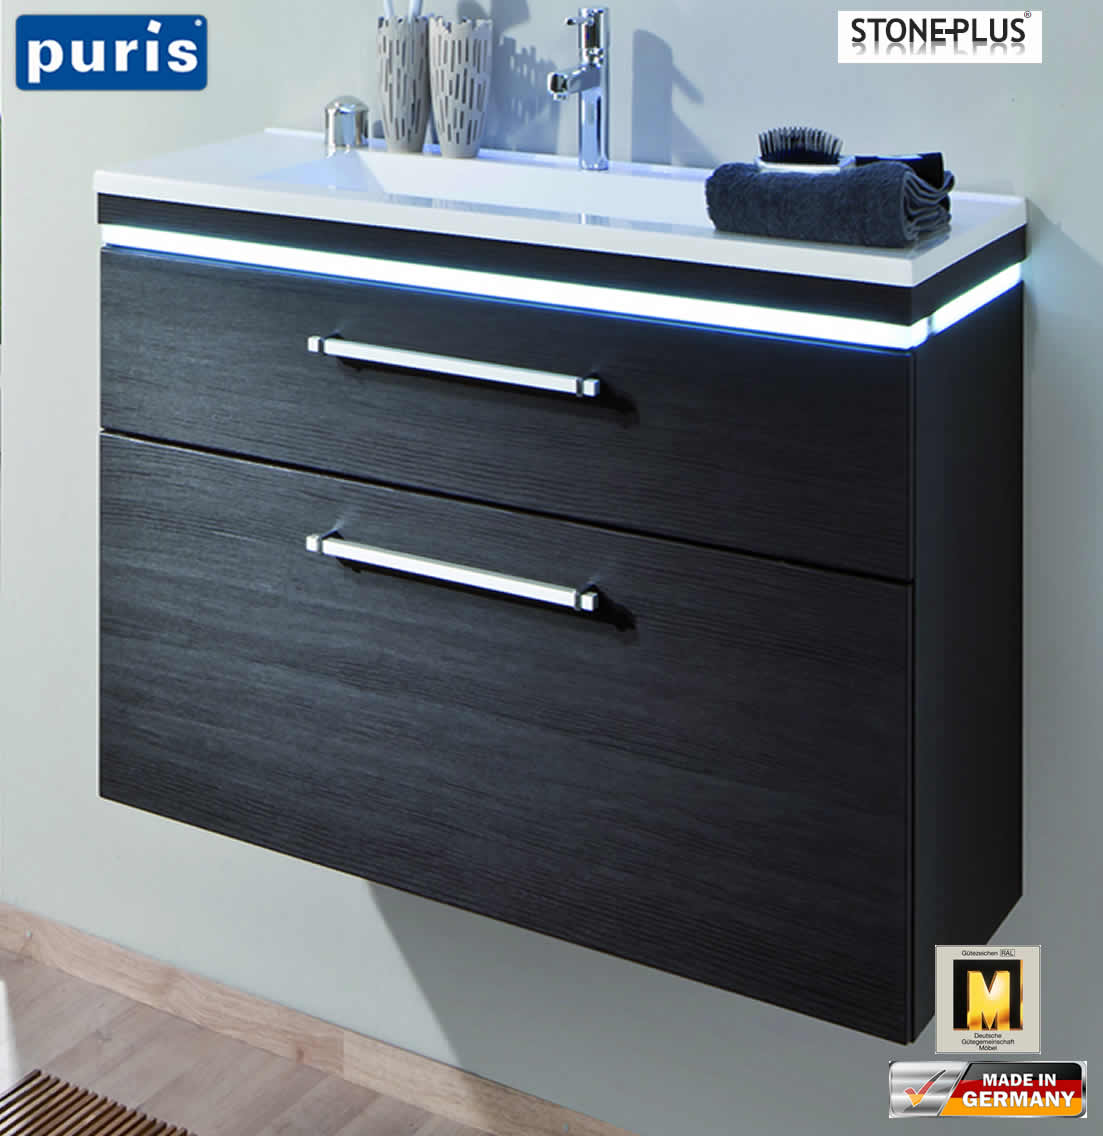 puris cool line waschtisch set 60 cm stoneplus led. Black Bedroom Furniture Sets. Home Design Ideas